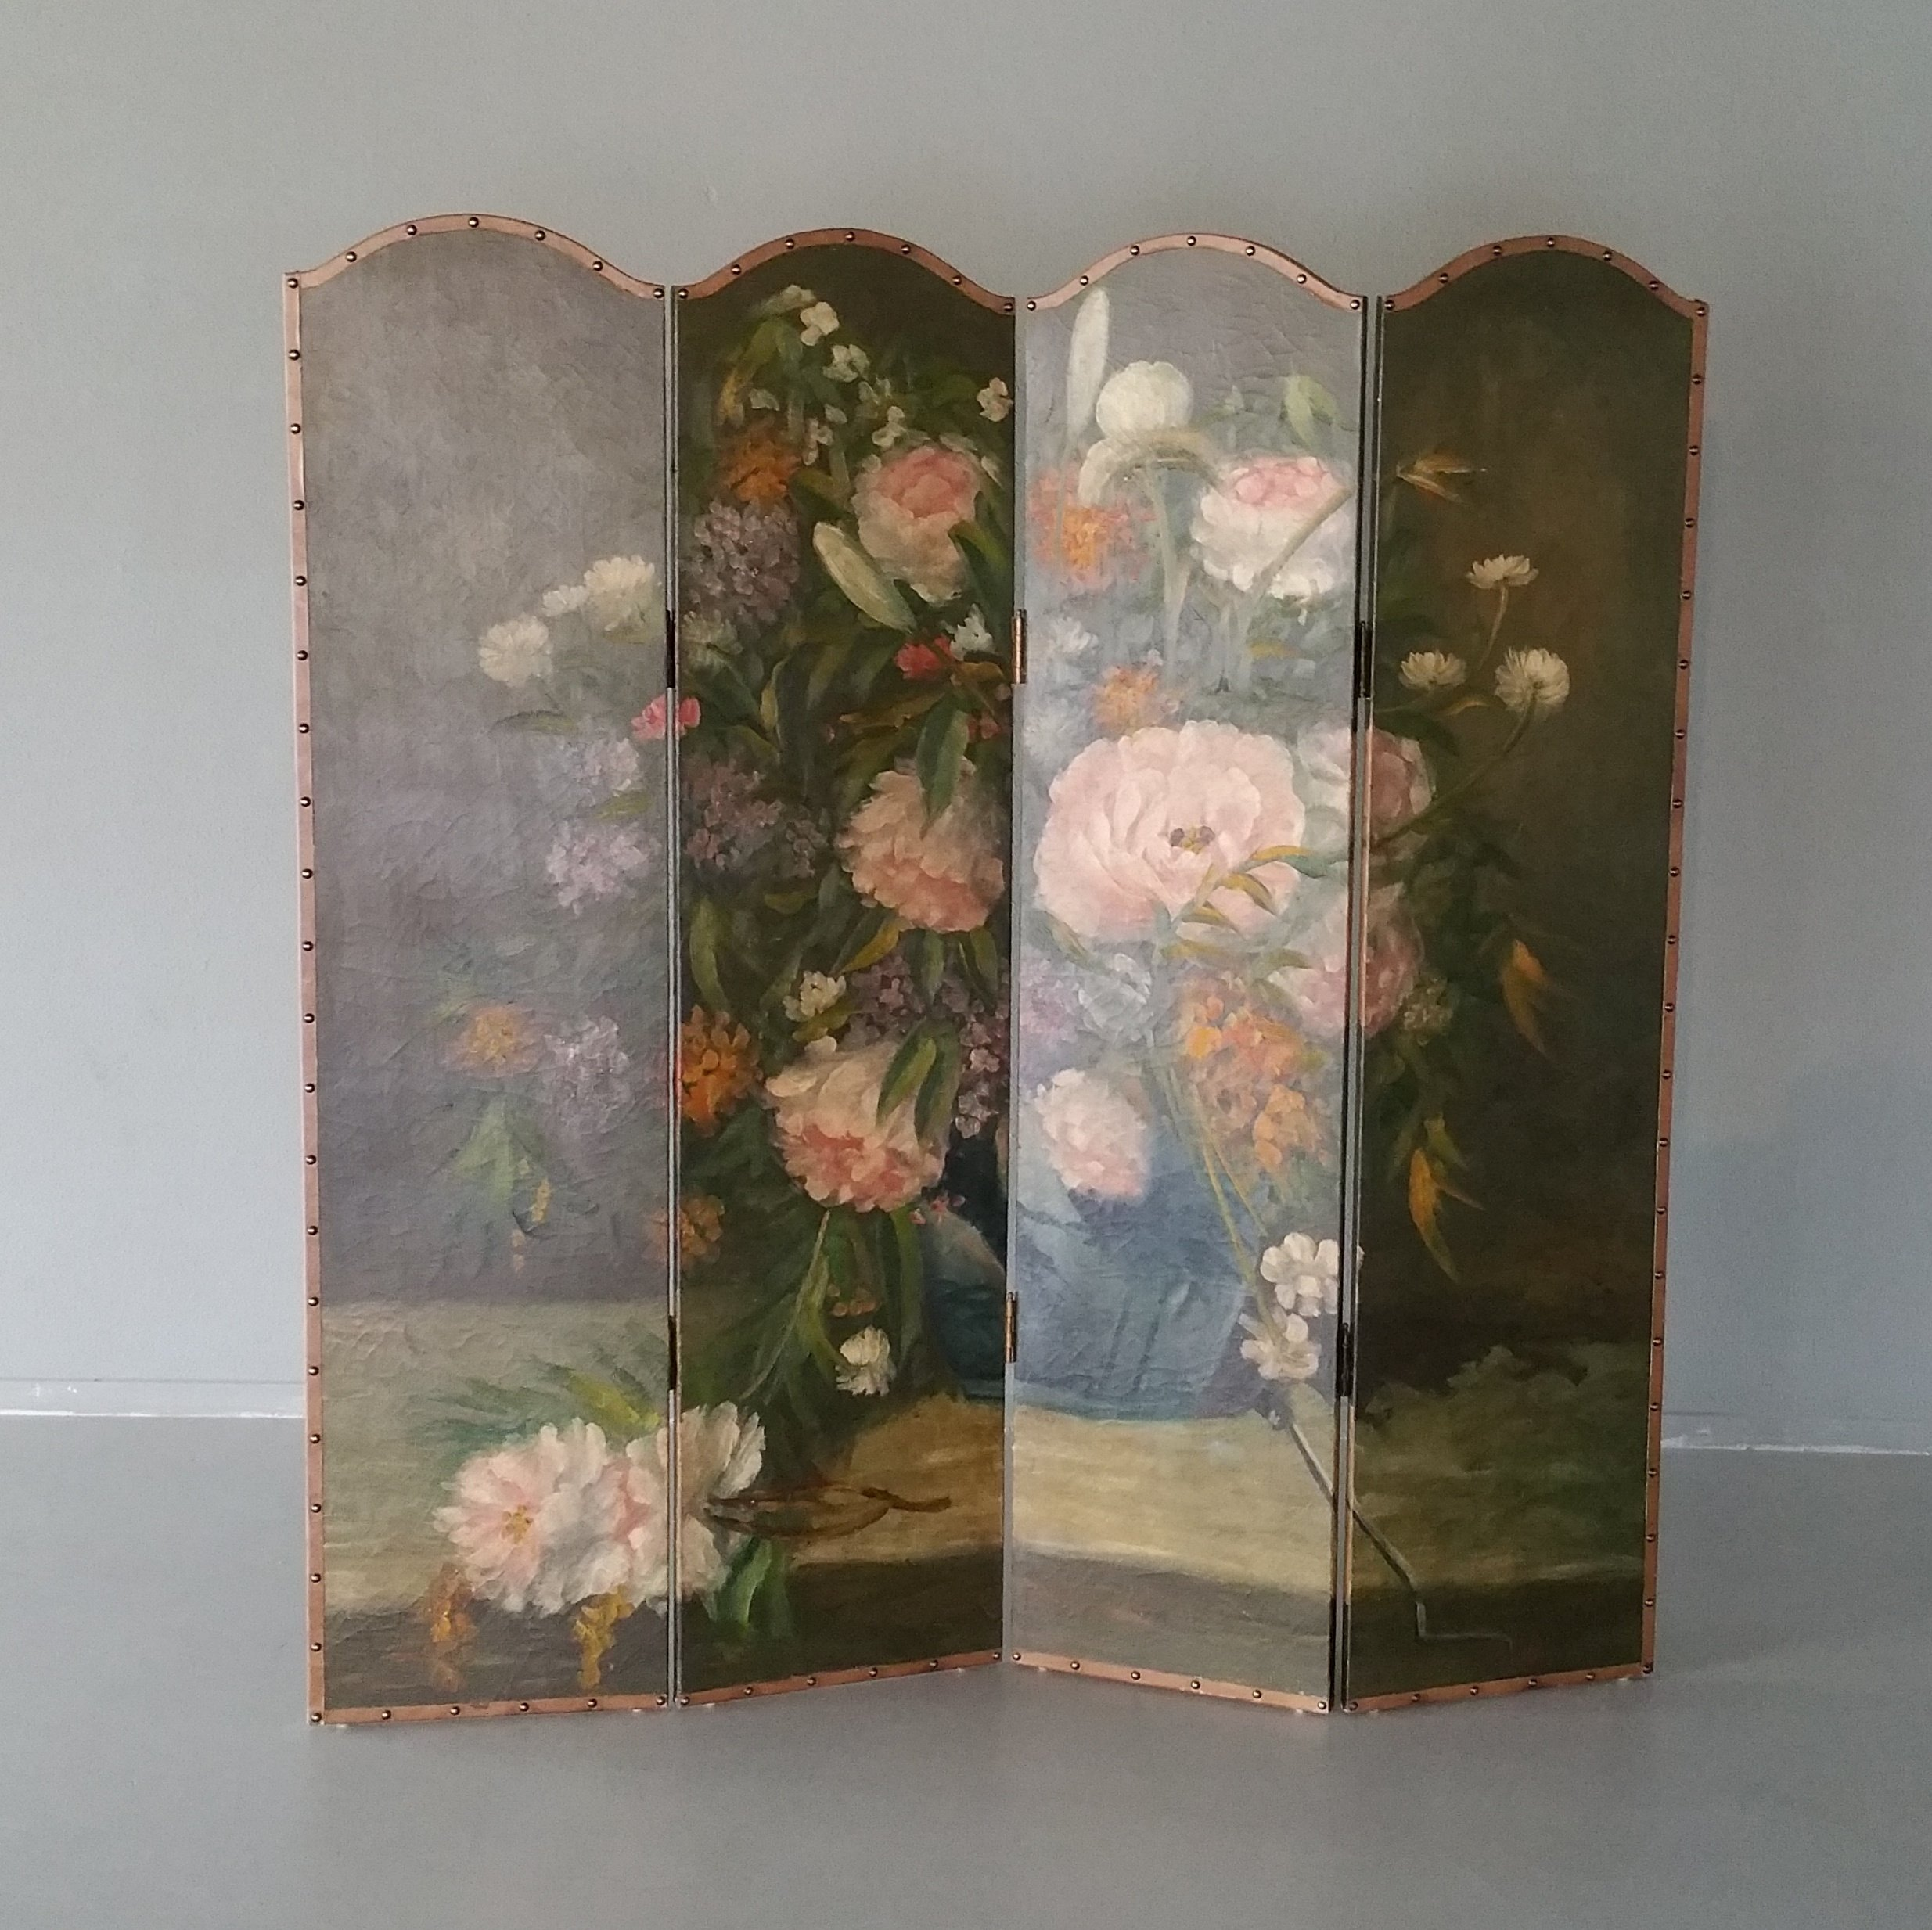 Vintage Four Panel Hand painted Screen Room Divider 1950s 76938